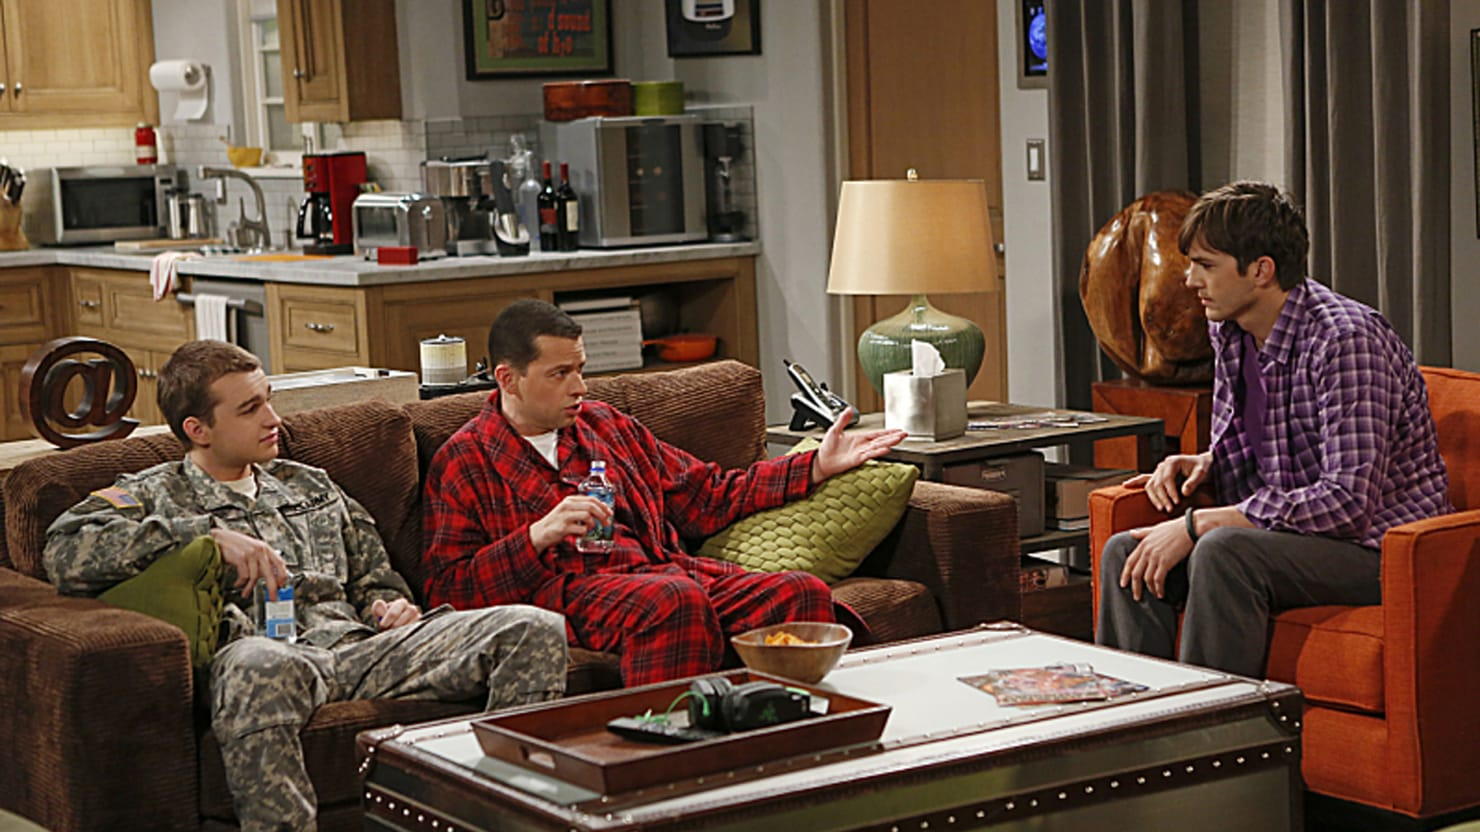 'Two and a Half Men' gets a daughter, Real World Star dies at 44